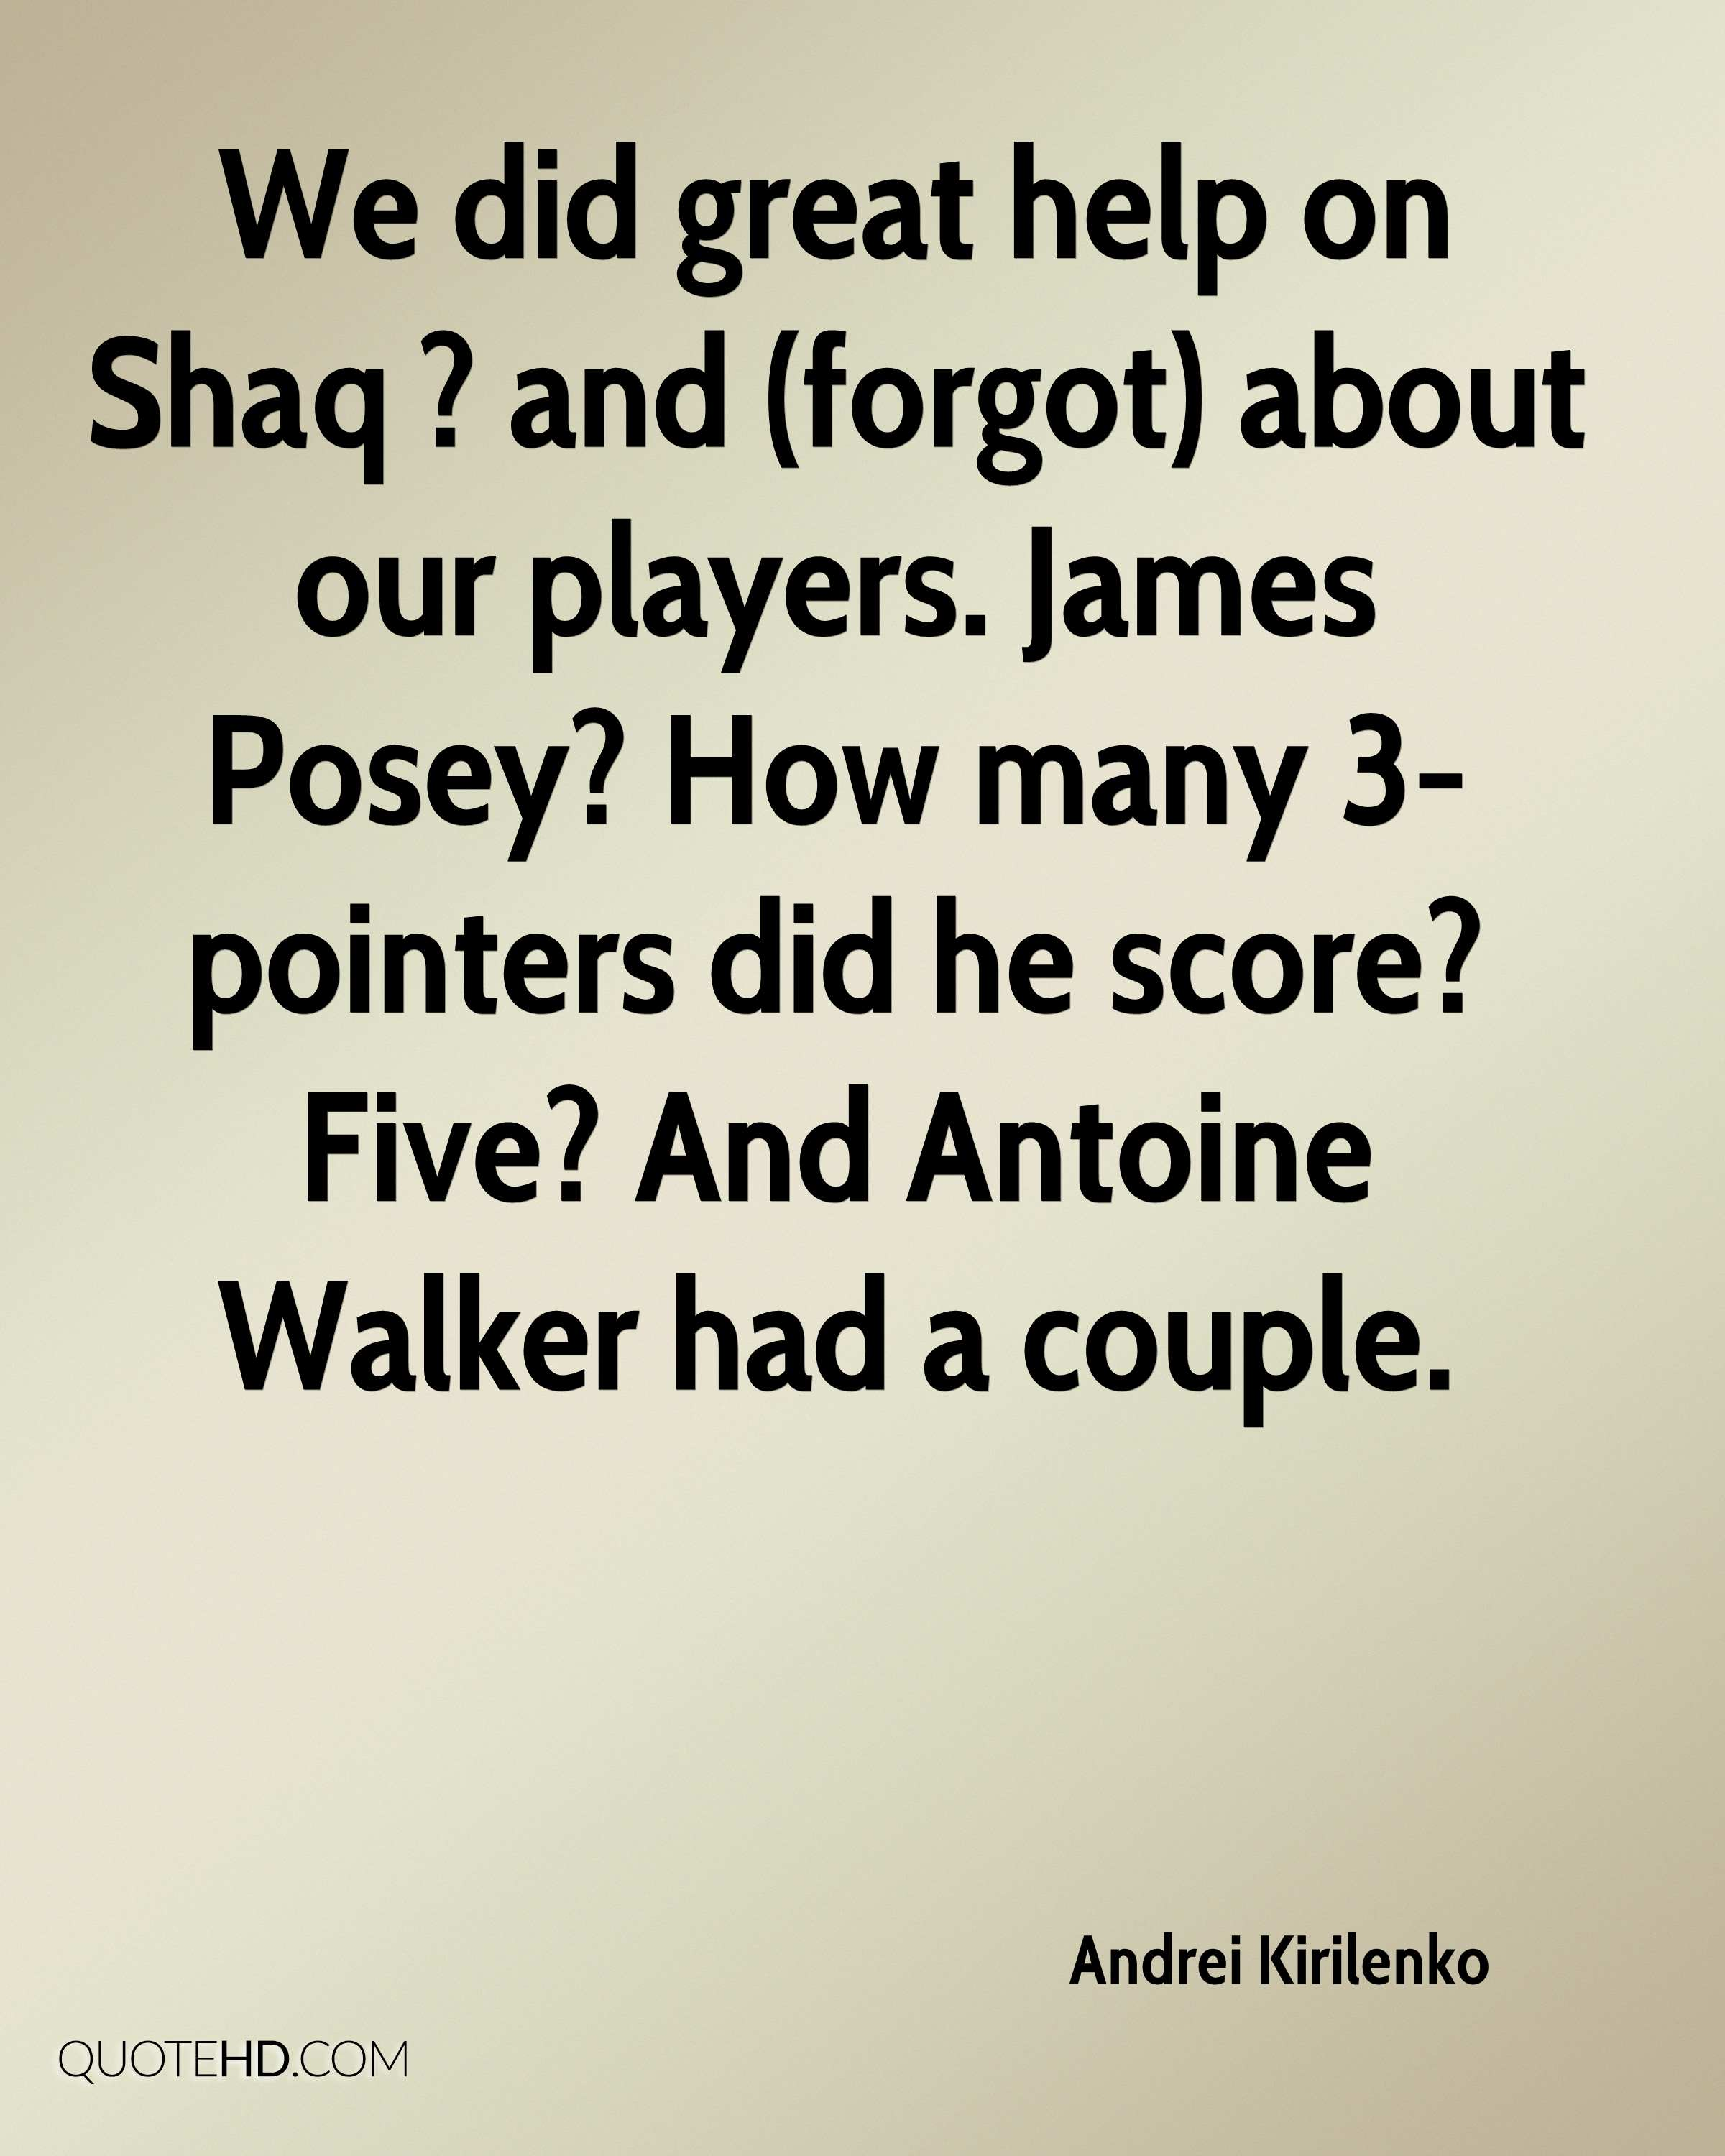 We did great help on Shaq ? and (forgot) about our players. James Posey? How many 3-pointers did he score? Five? And Antoine Walker had a couple.